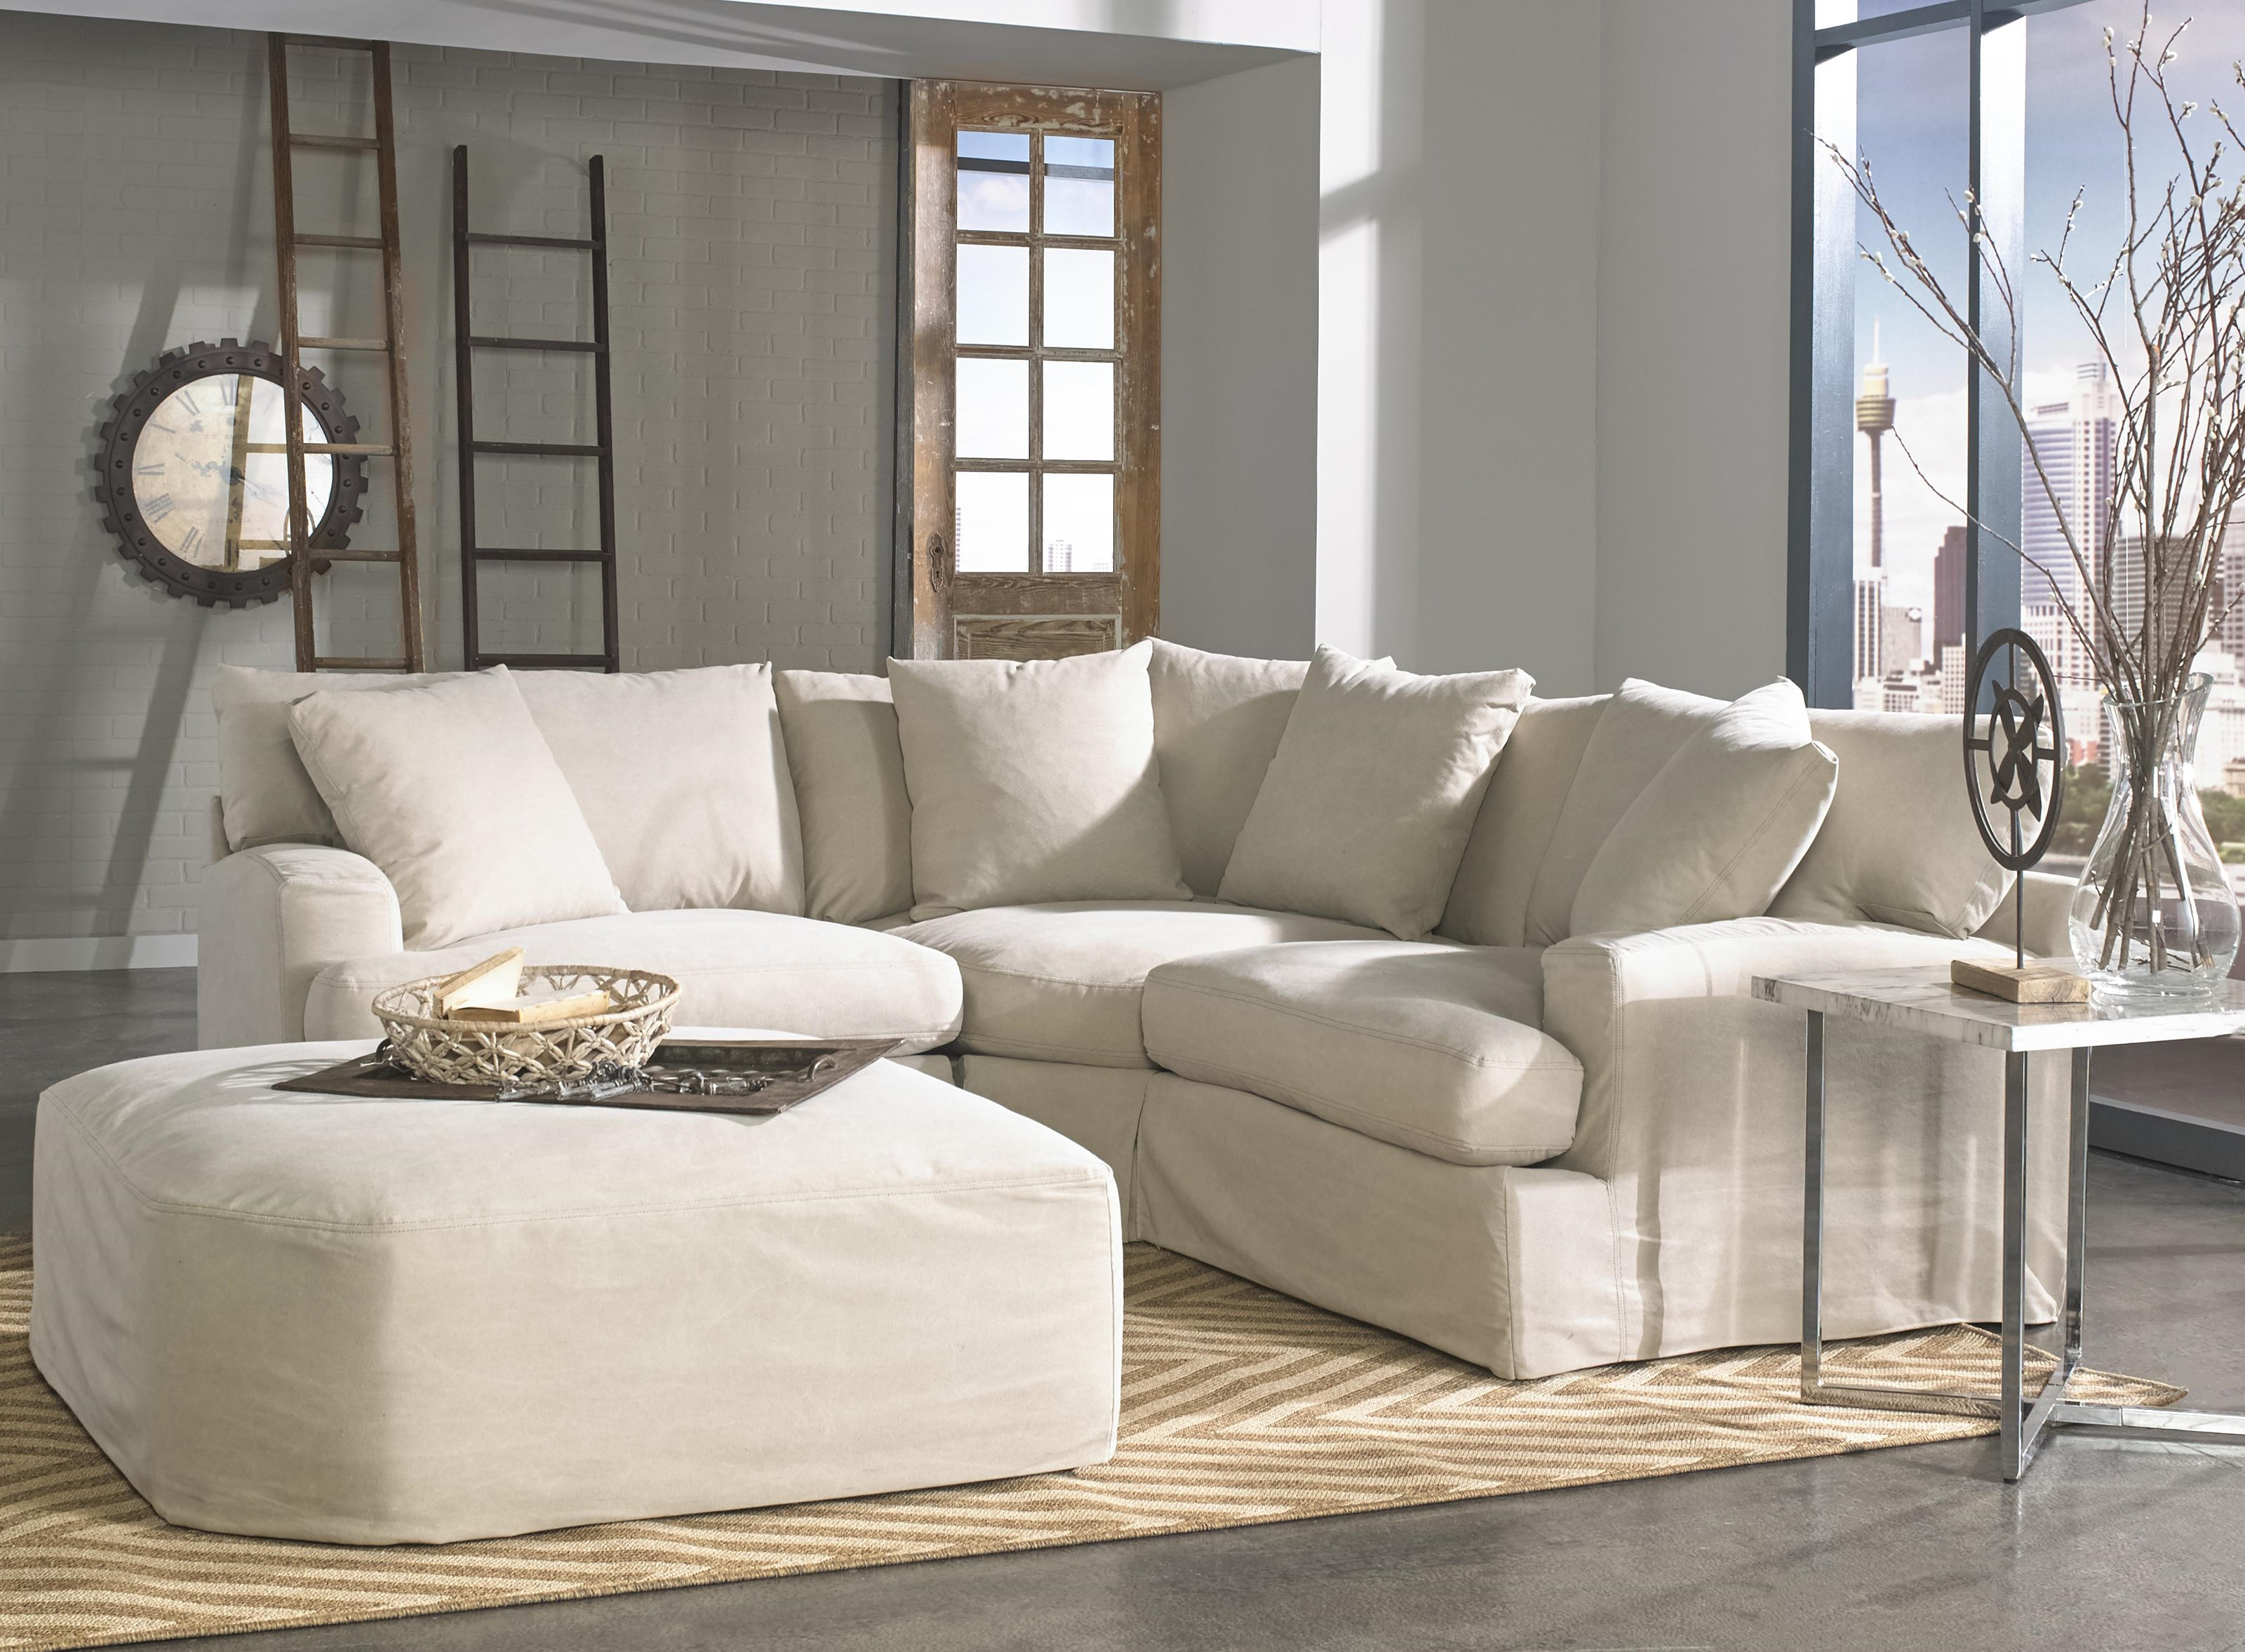 1300 3 Pc Sectional with Ottoman by Synergy Home Furnishings at Baer's Furniture